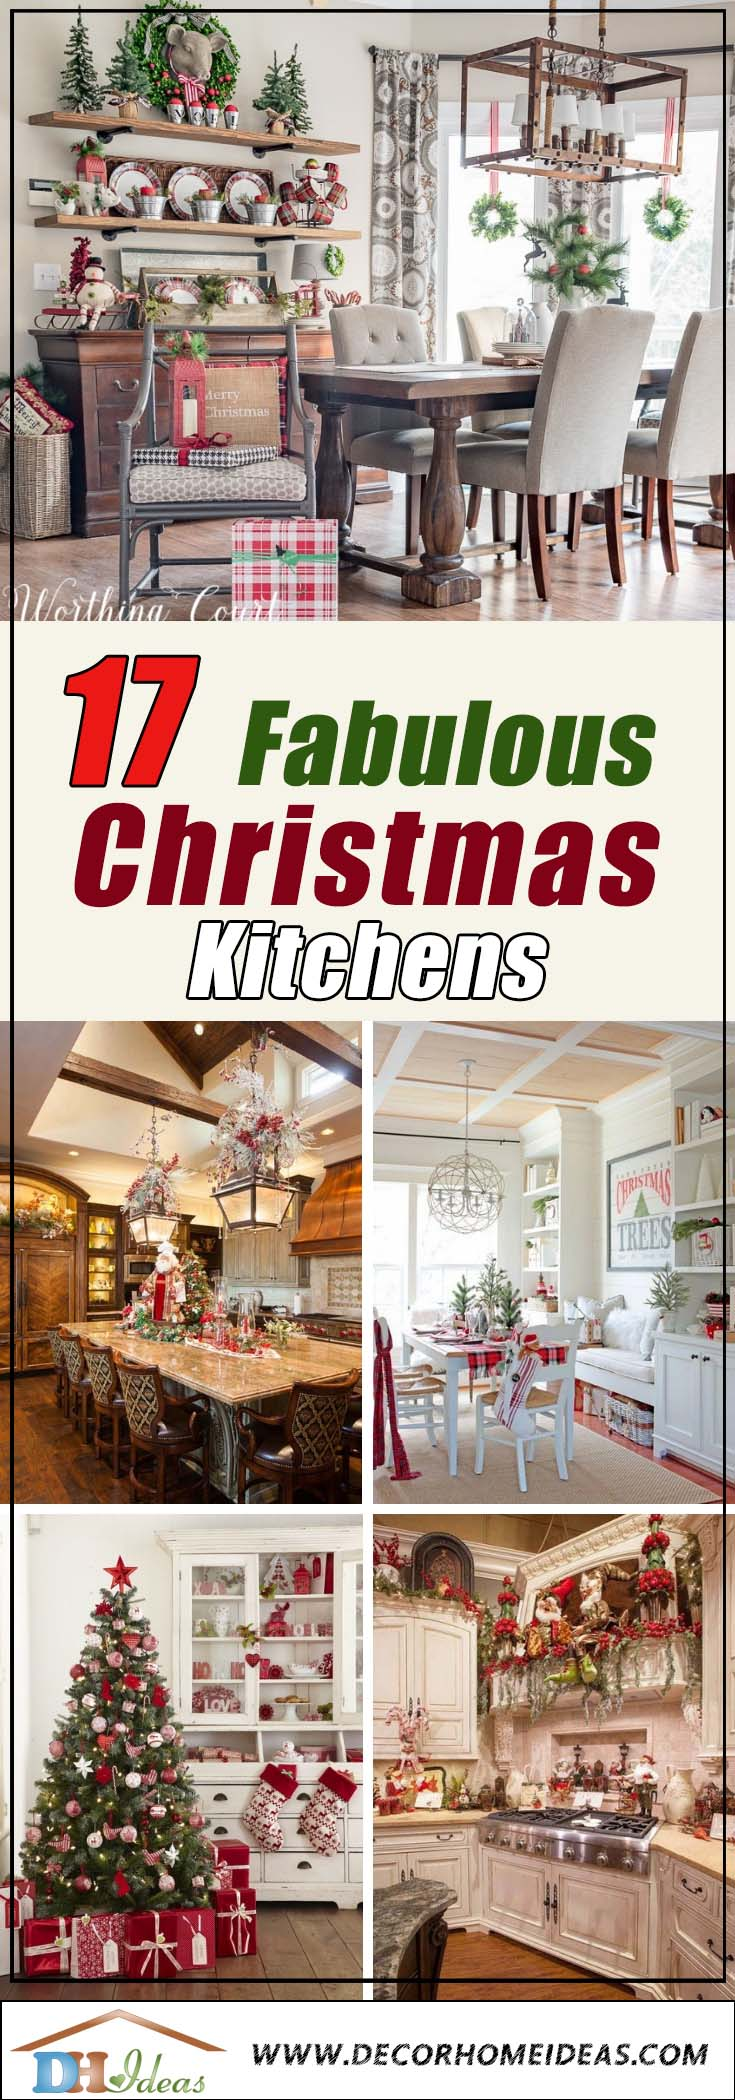 Amazing Christmas Kitchens #Christmas #Christmasdecor #kitchen #Christmaskitchen #decorhomeideas